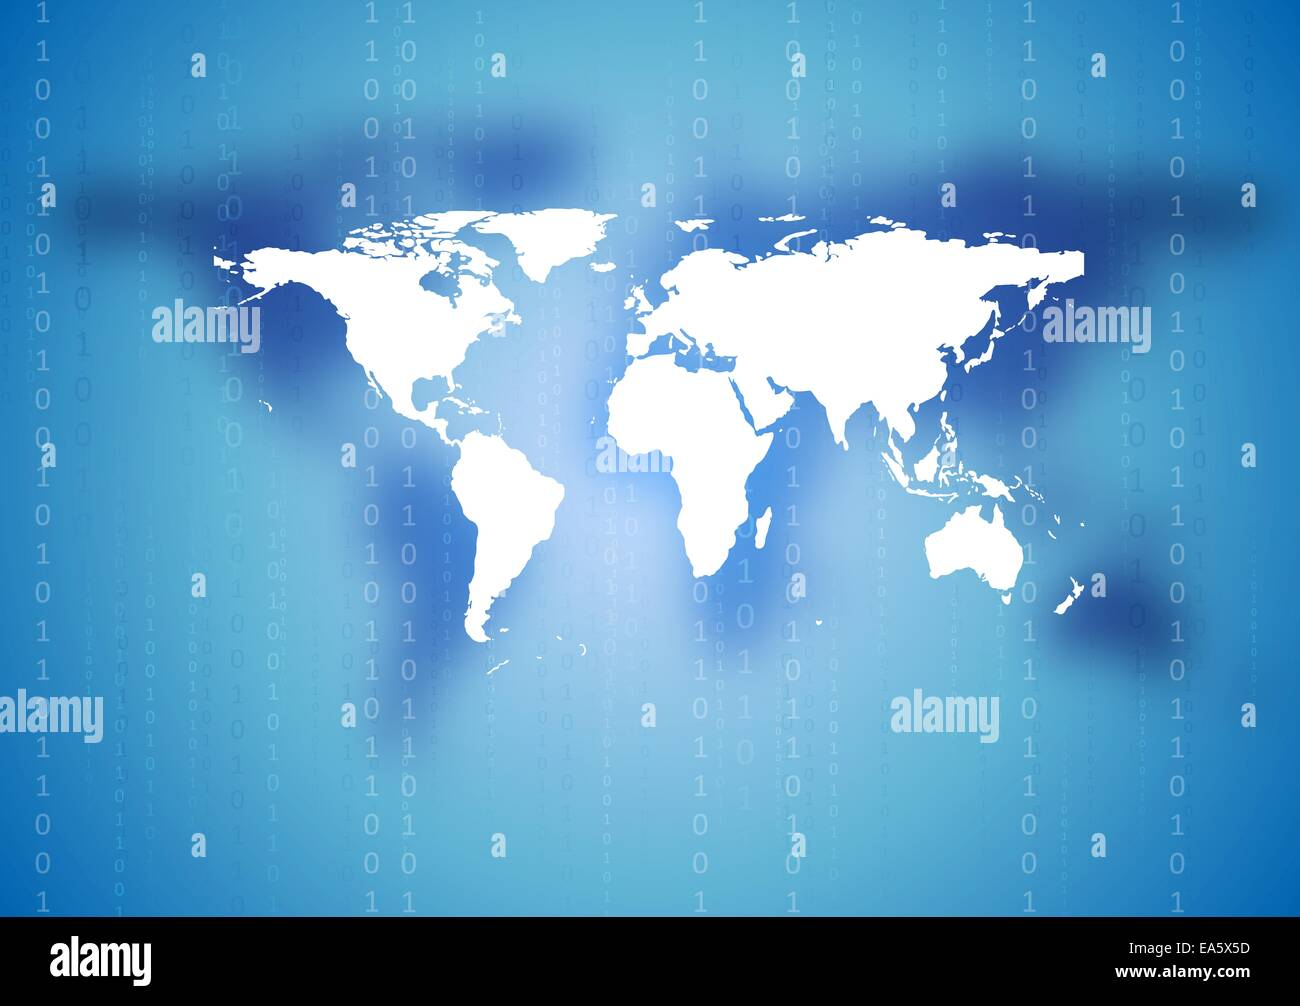 Abstract tech world map background stock photo royalty free image abstract tech world map background gumiabroncs Gallery